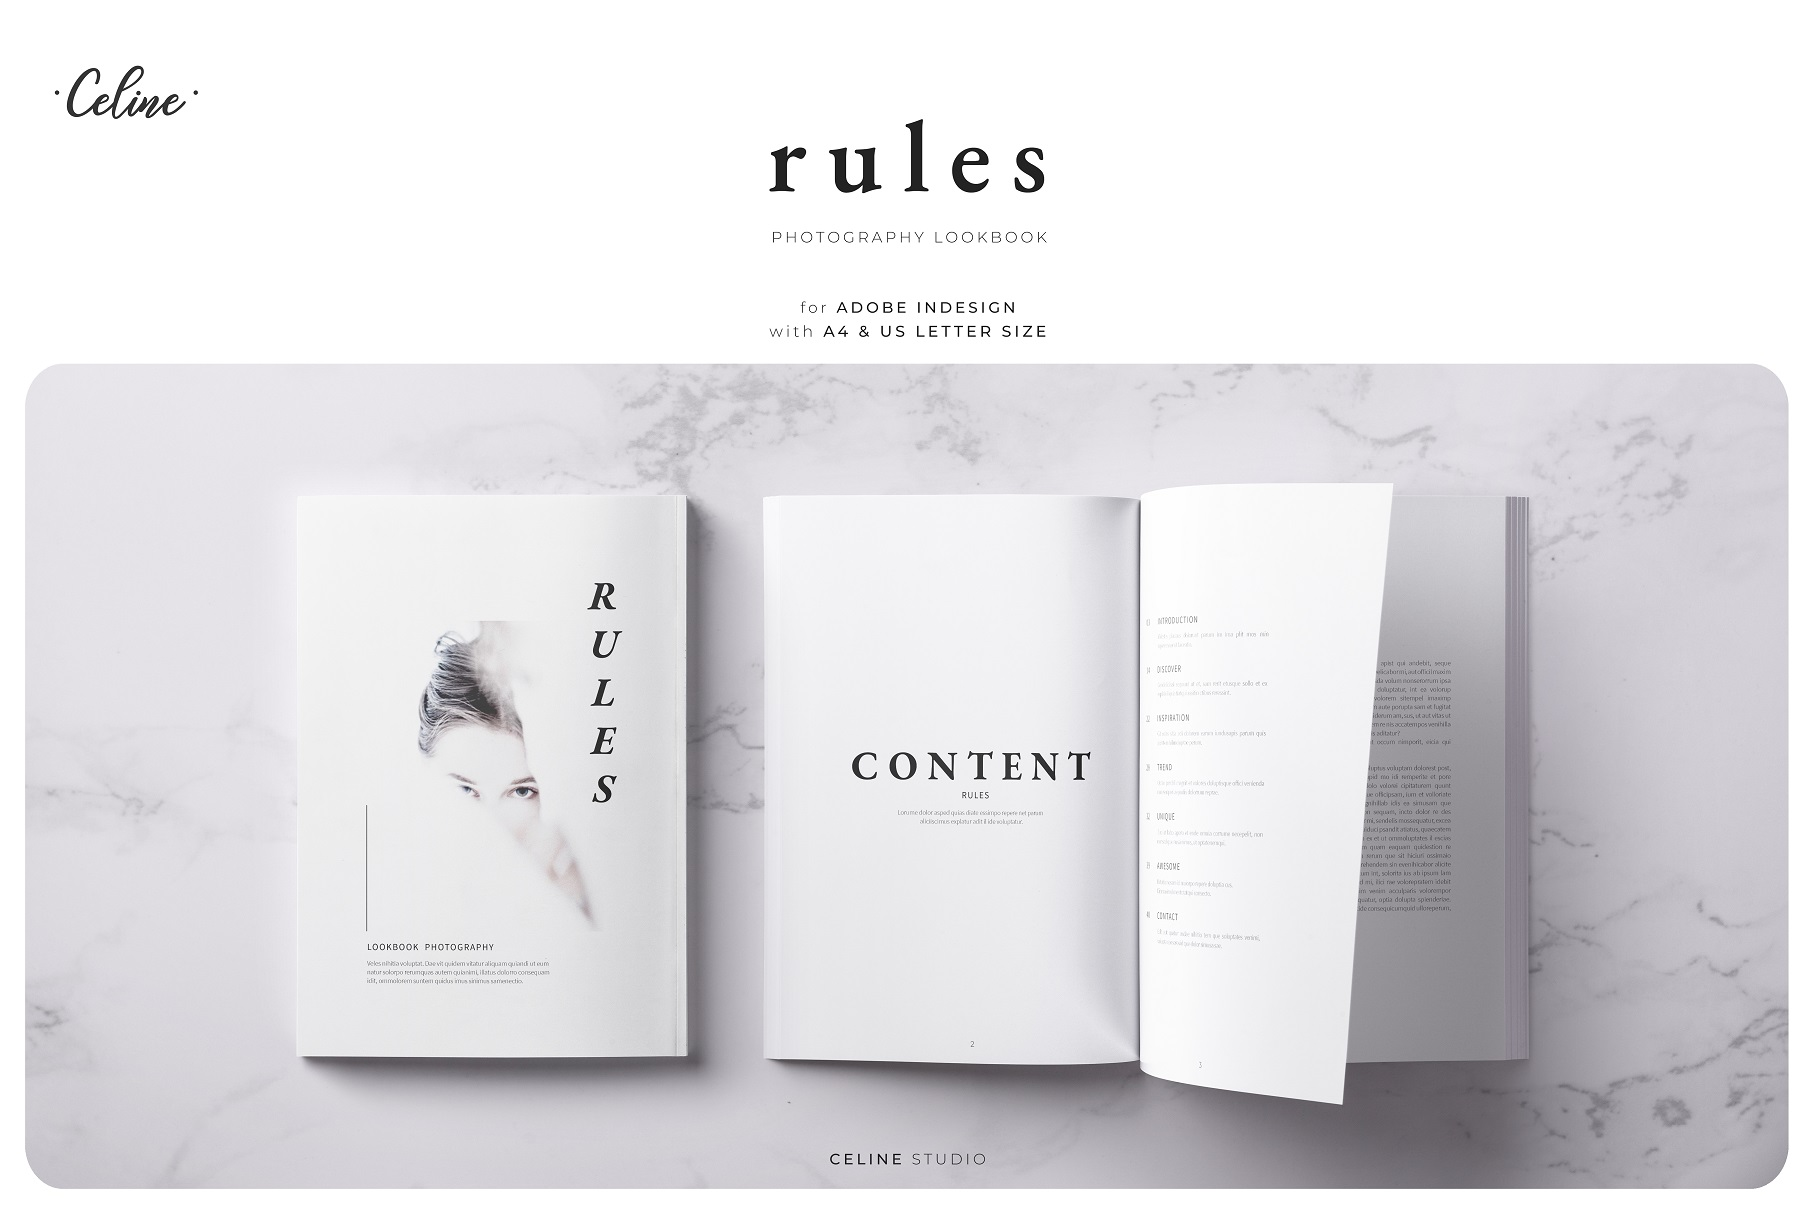 RULES Photography Lookbook Template